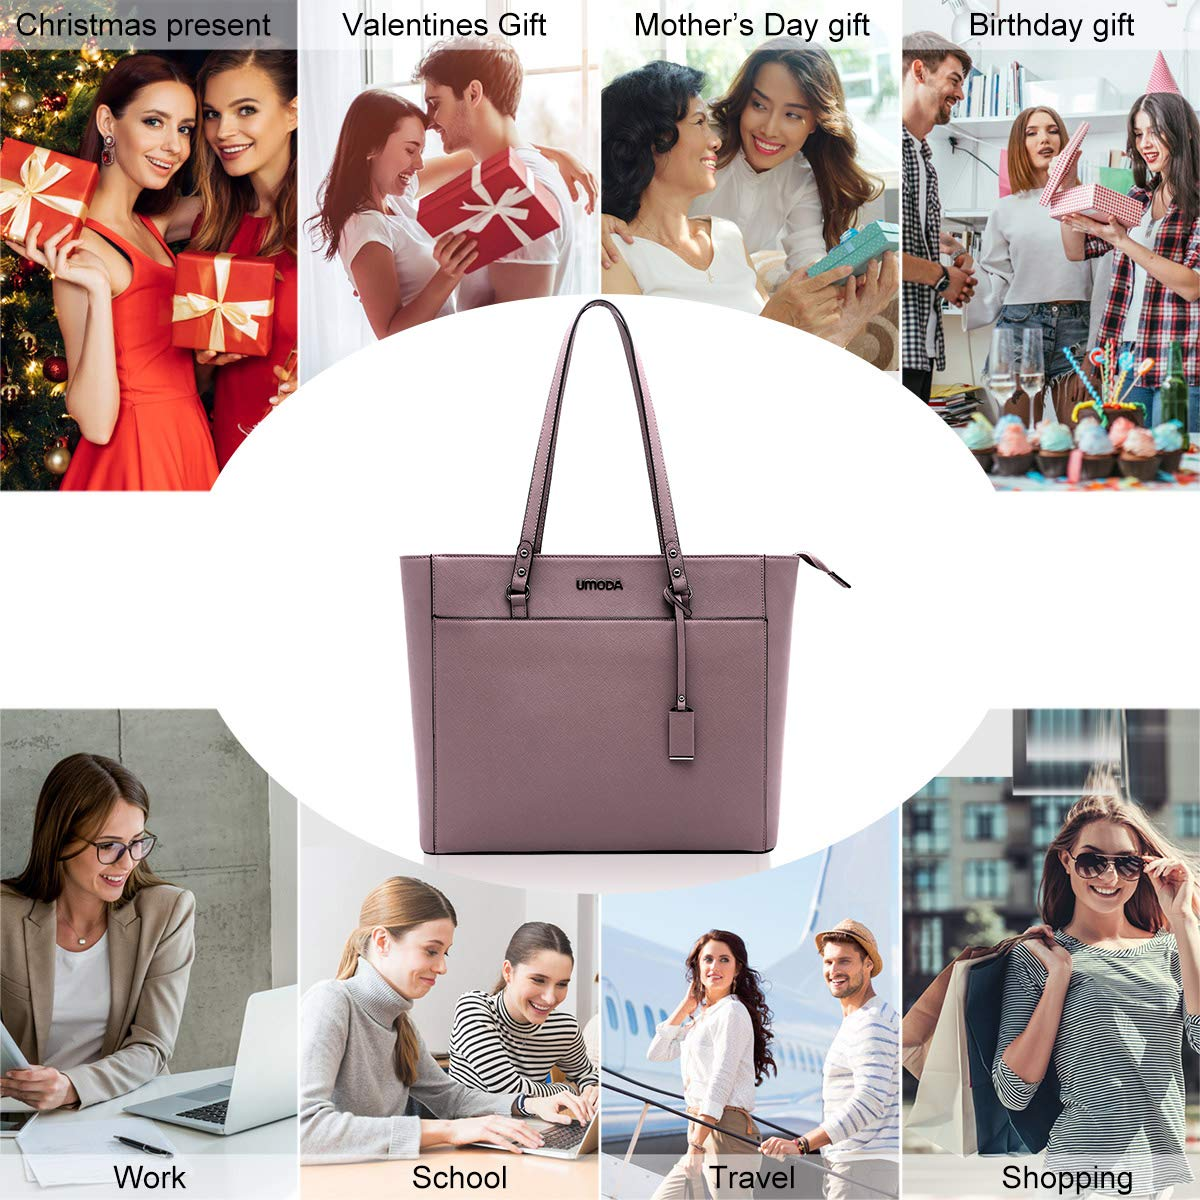 Laptop Bag for Woman,13-15.6 Inch Laptop Tote Bag Briefcase with Padded Compartment, Best [Purple] by UMODA (Image #6)